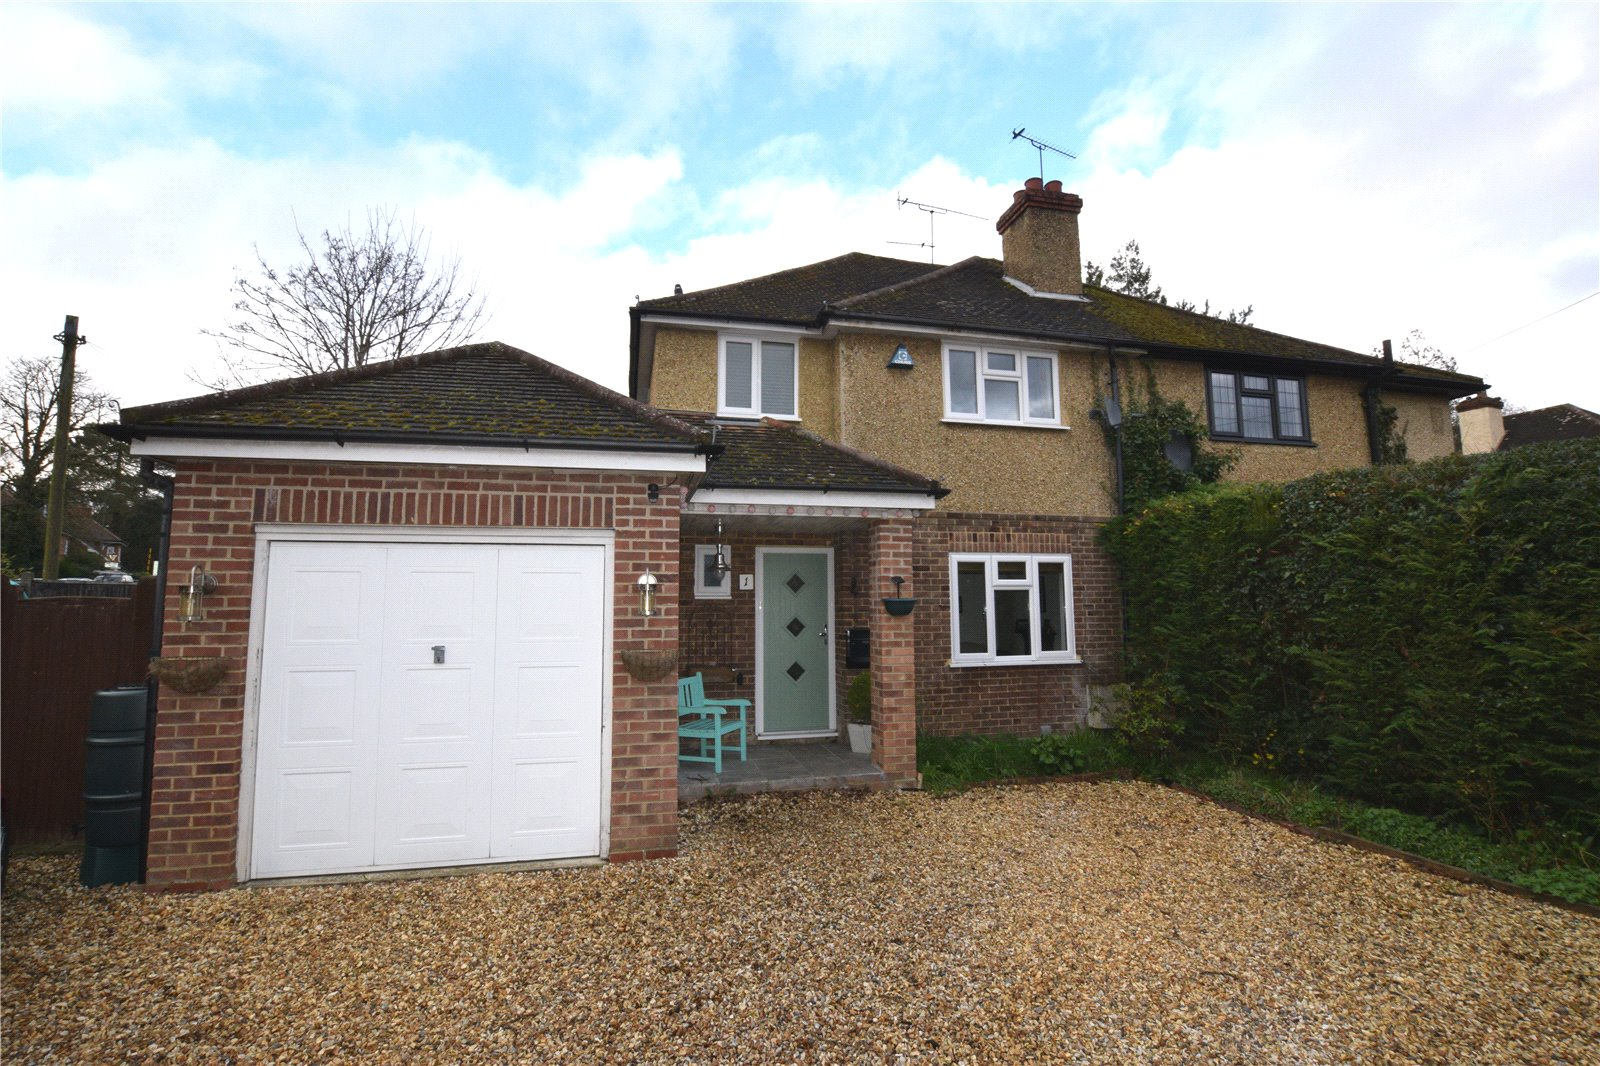 3 Bedrooms Semi Detached House for sale in Frimley Grove Gardens, Frimley, Camberley, Surrey, GU16